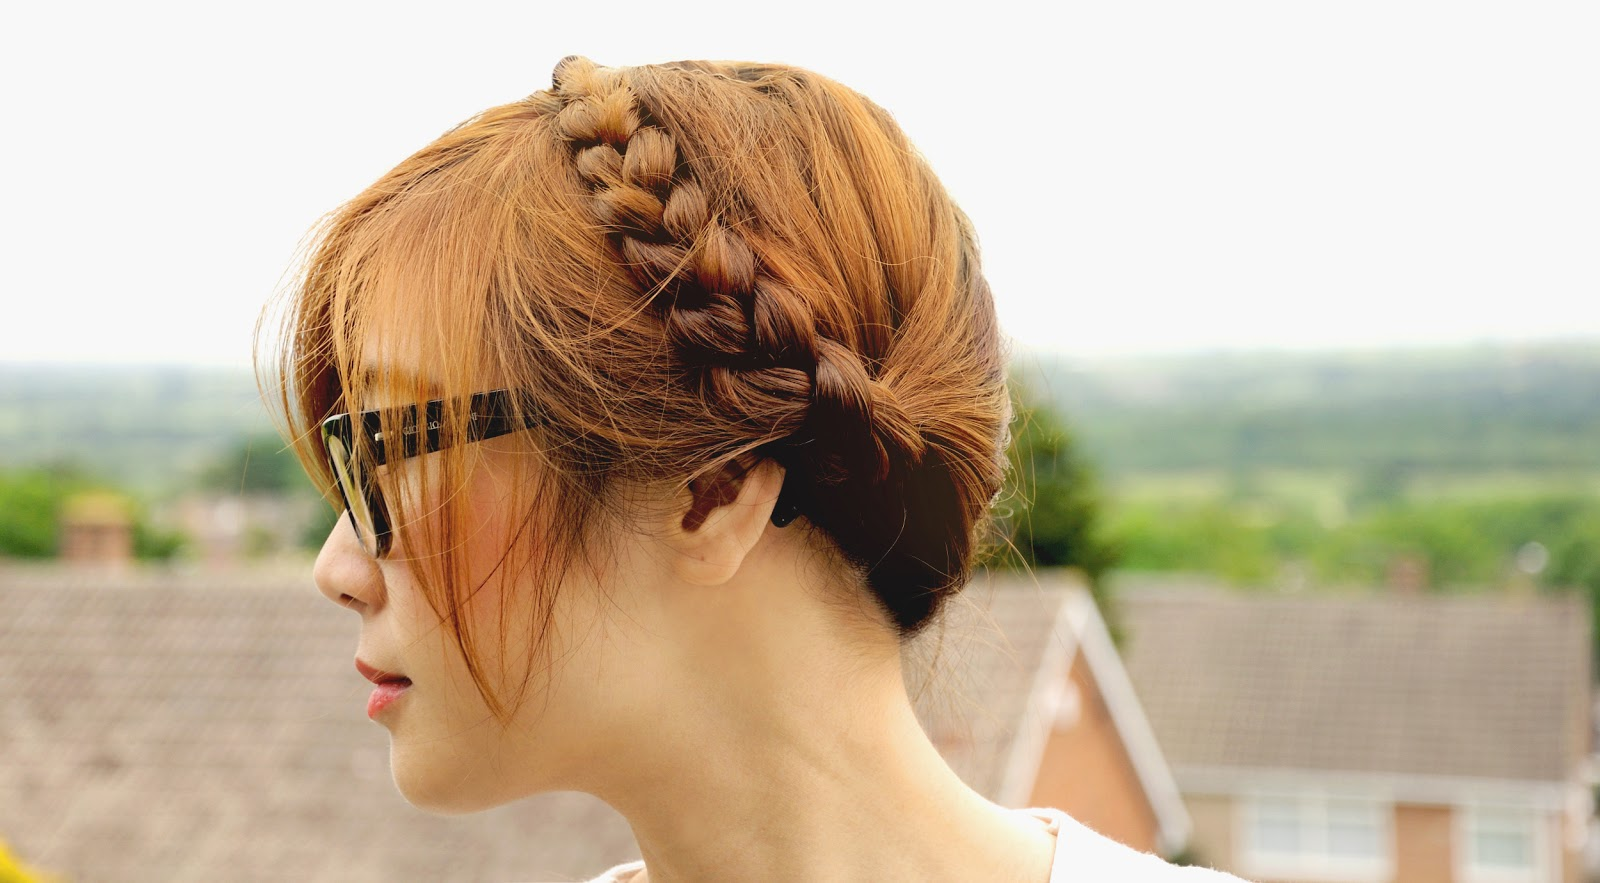 milkmaid braid plaited hairstyle